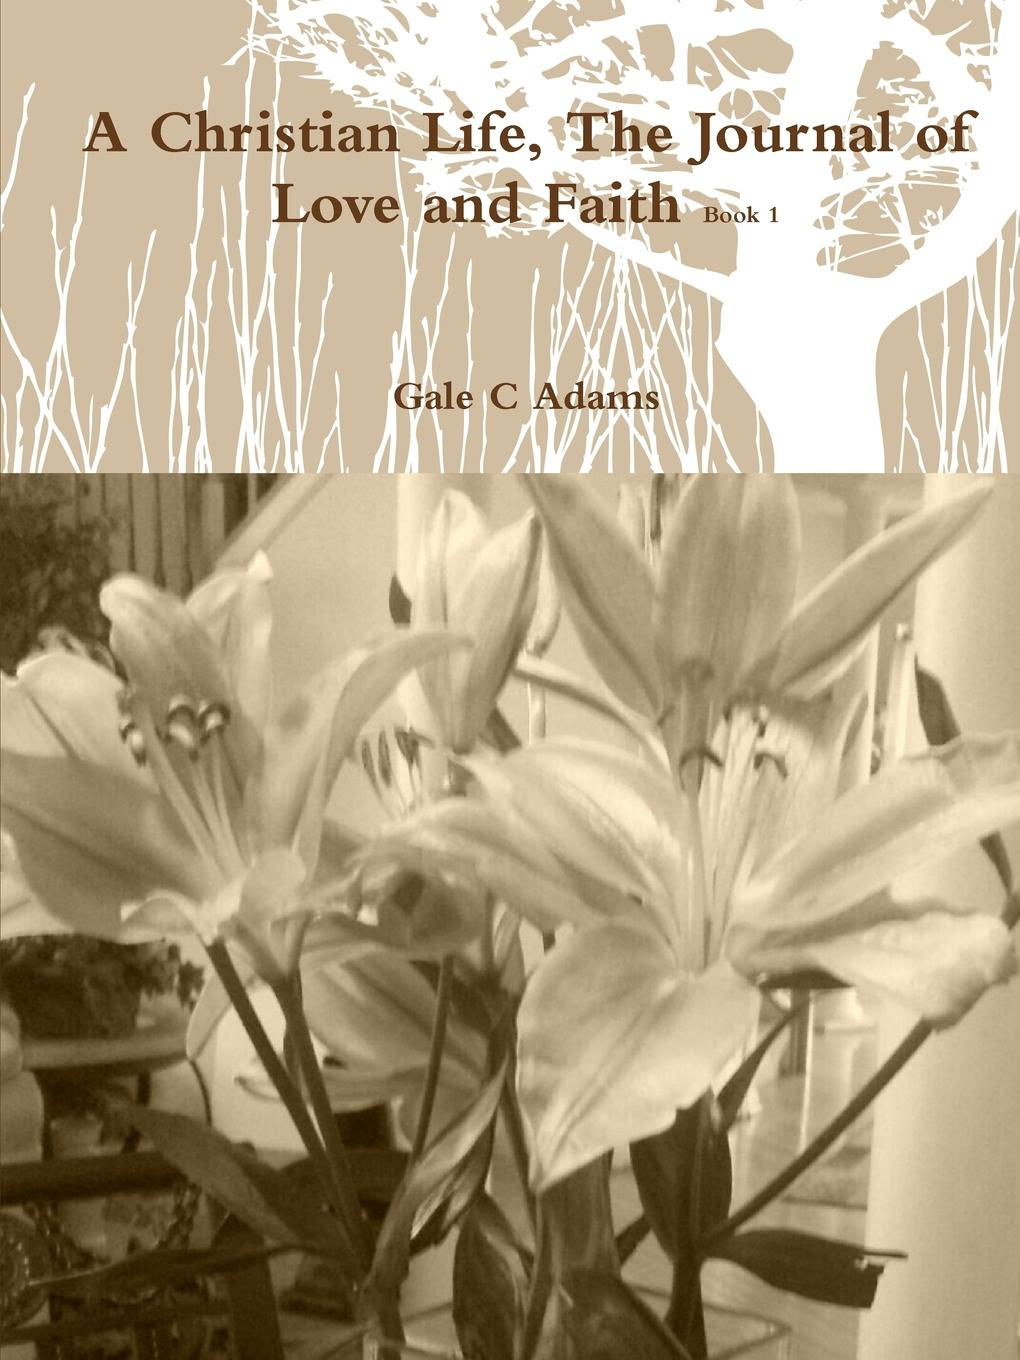 Gale C Adams A Christian Life, The Journal of Love and Faith Book 1 travis monday help yourself to god s help